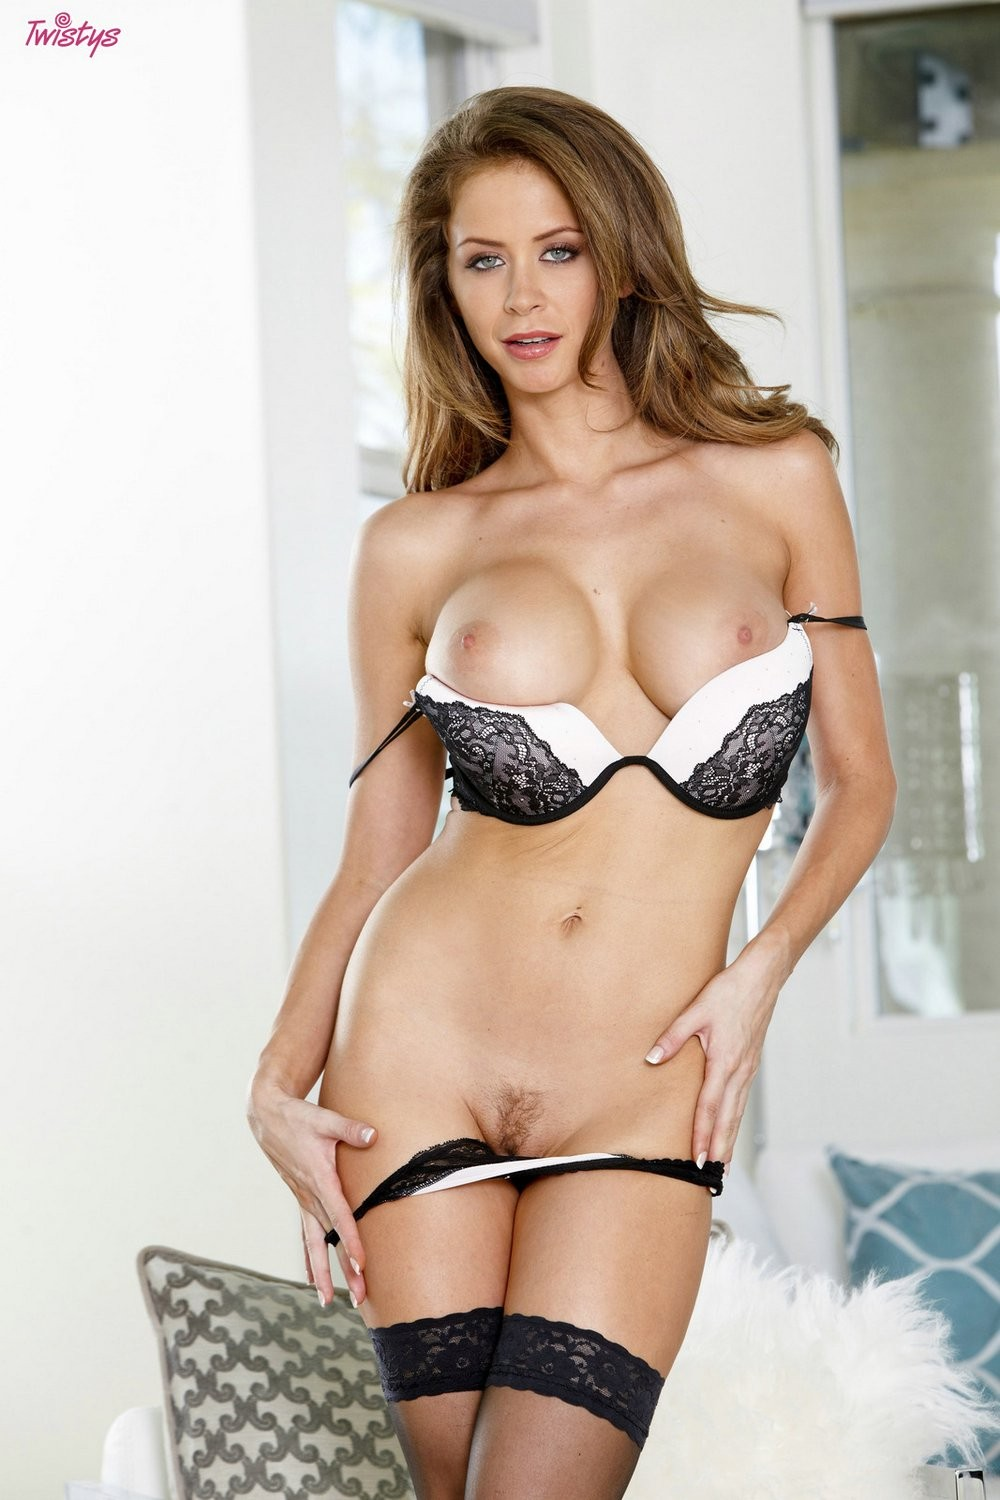 Emily addison inserts her fingers against her aroused pussy lips